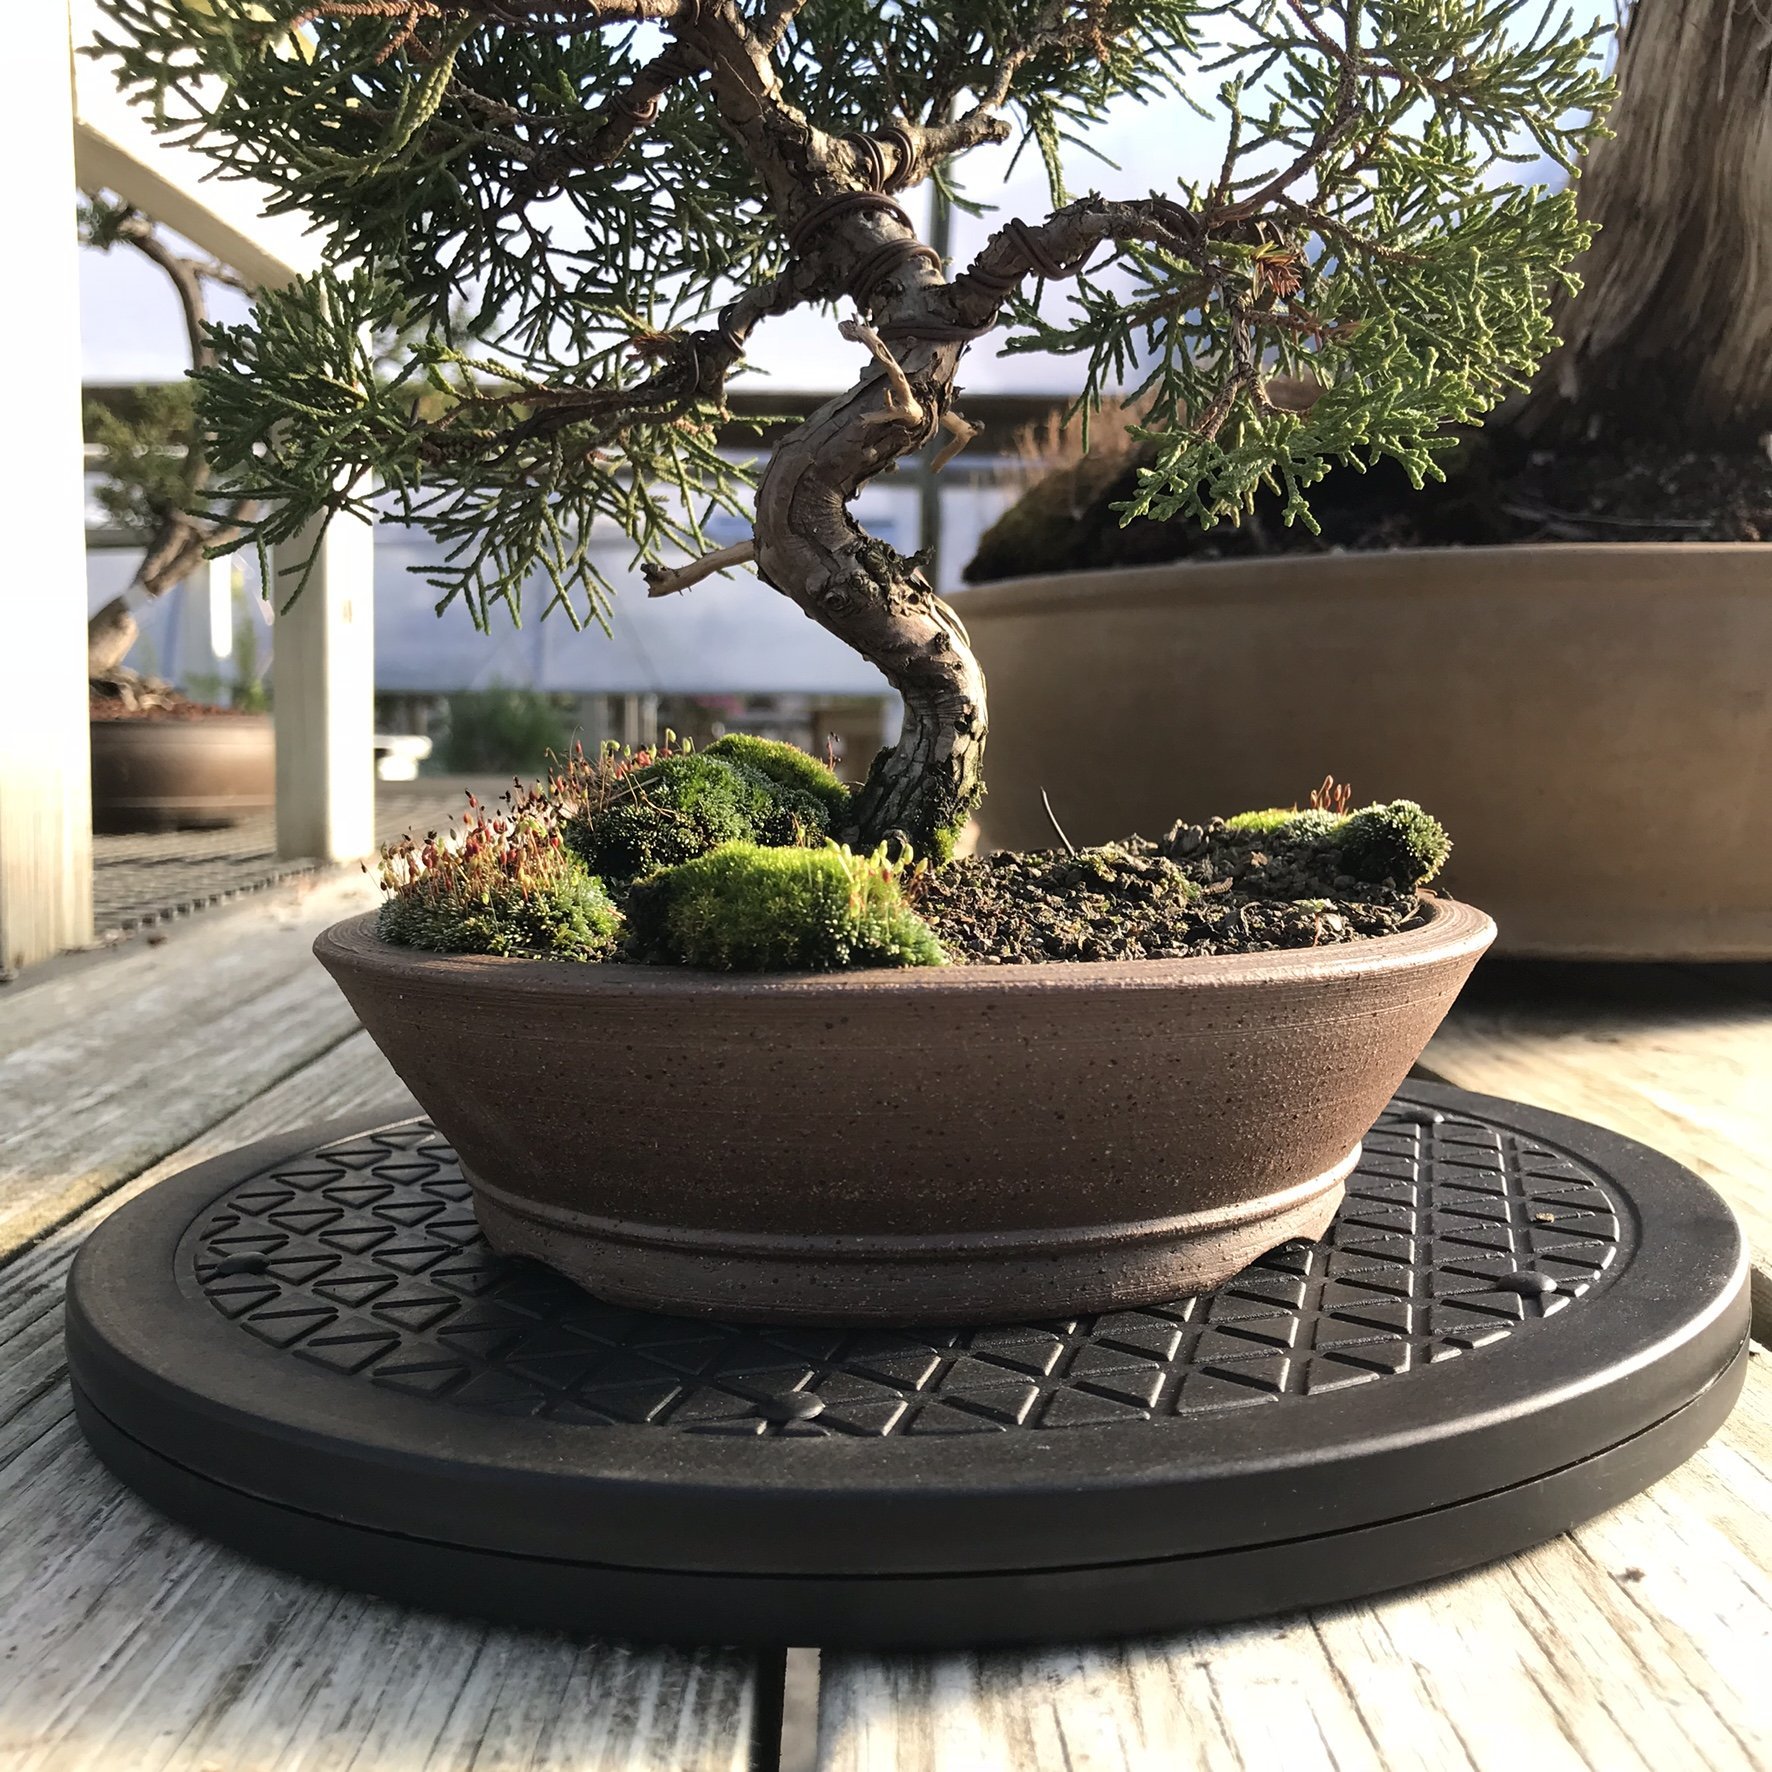 Mighty Mini Bonsai Tree Turntable 10'' Base Stainless Steel Low Cost 200-Pound Capacity 360-Degree Rotation Allows Easy Pruning Or Great Bonsai Tree Displays